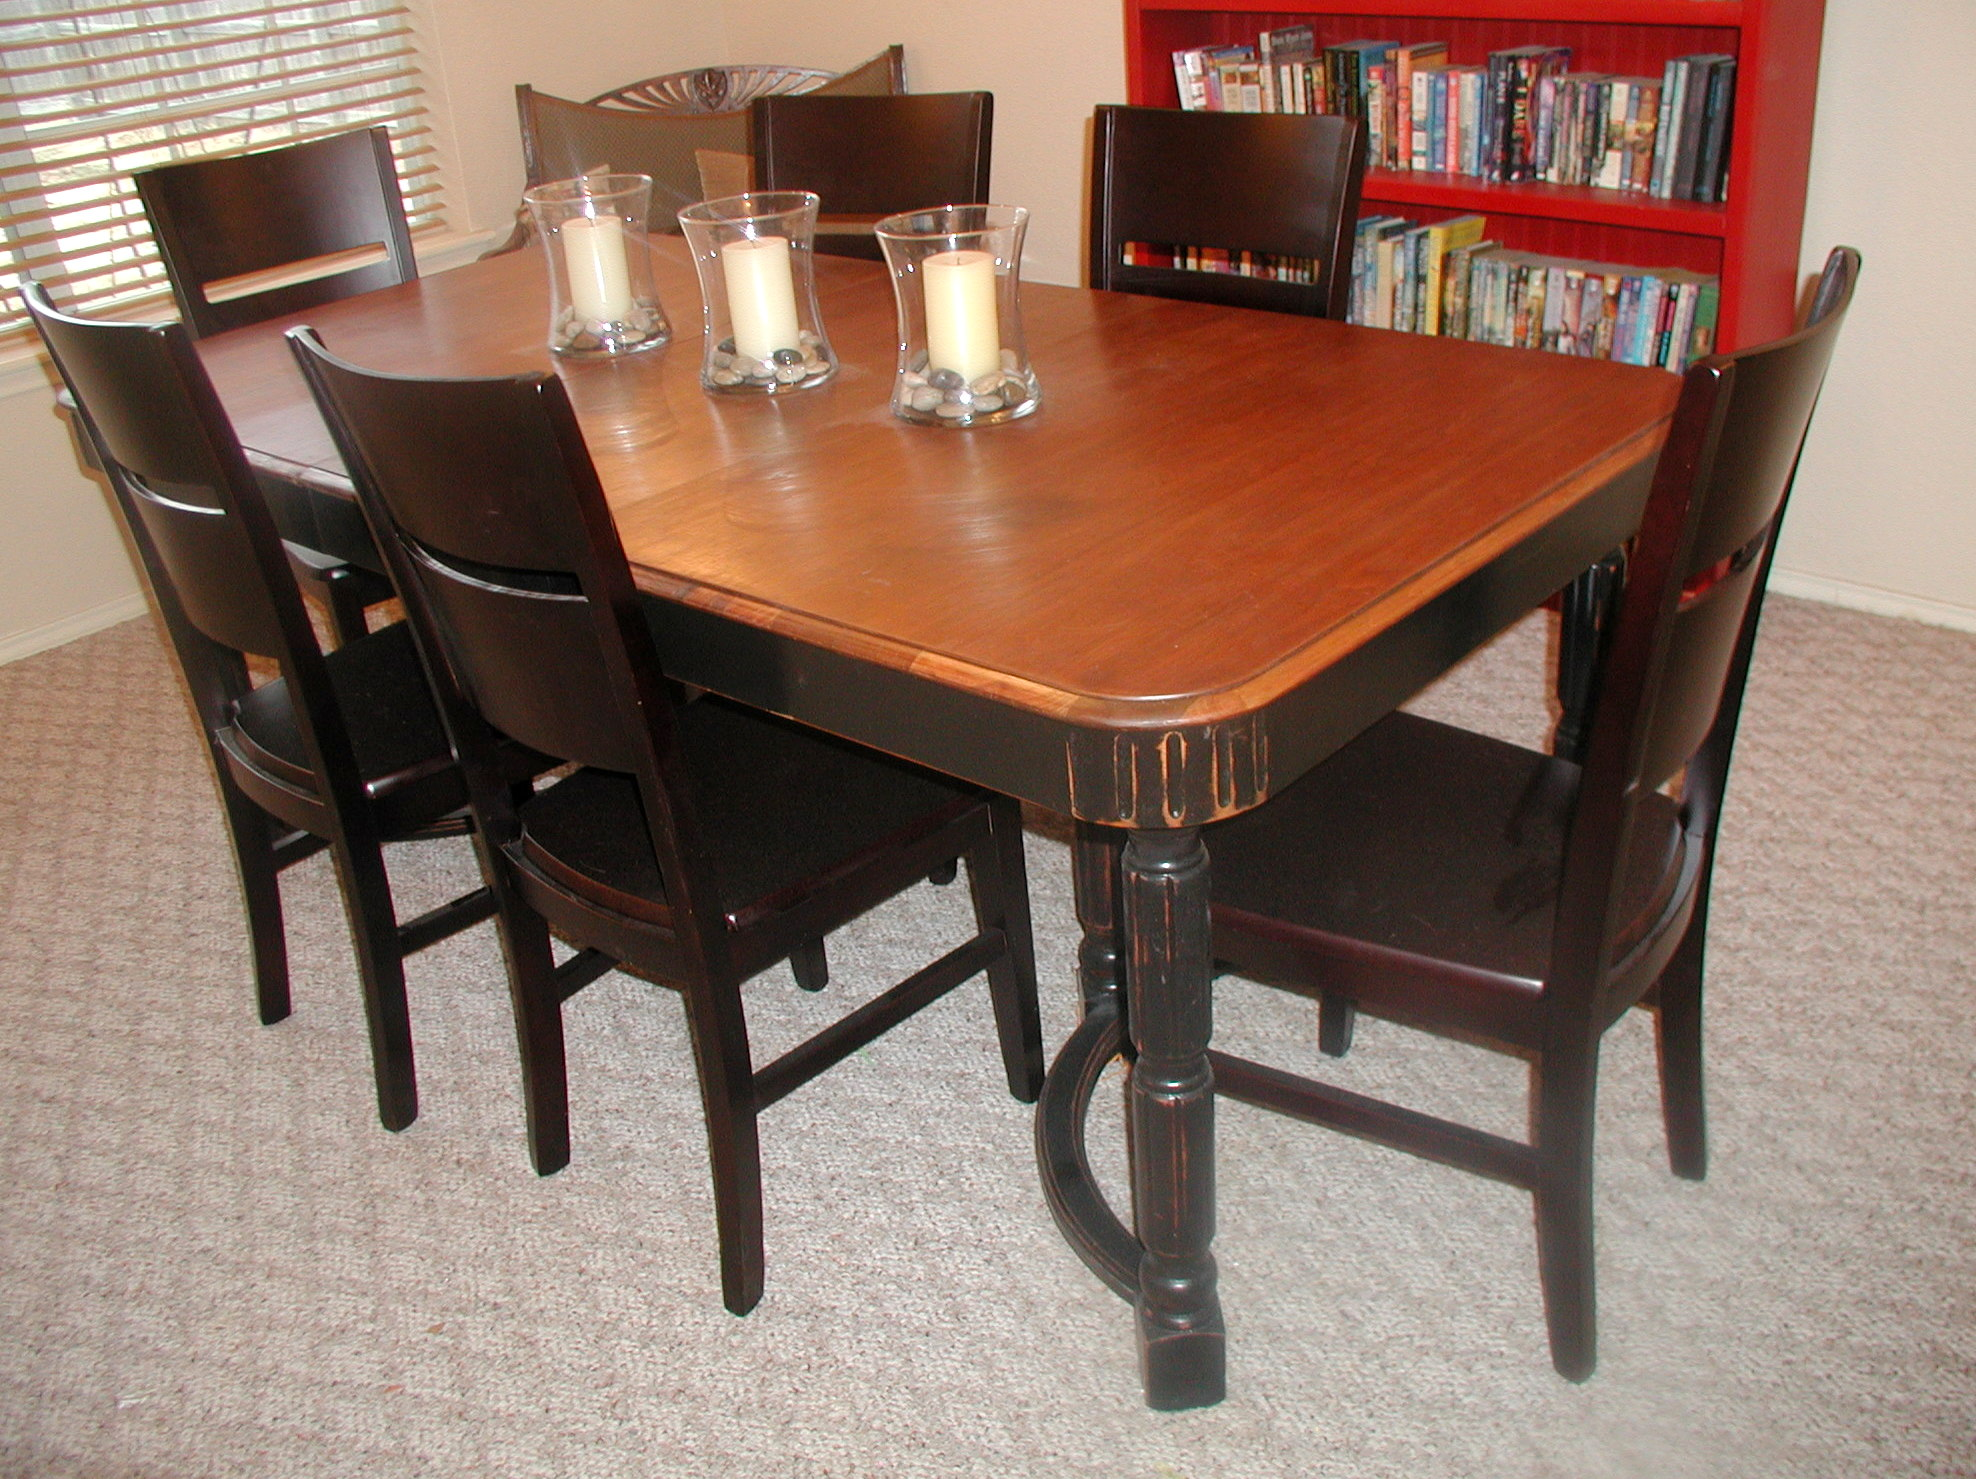 finished dining room table